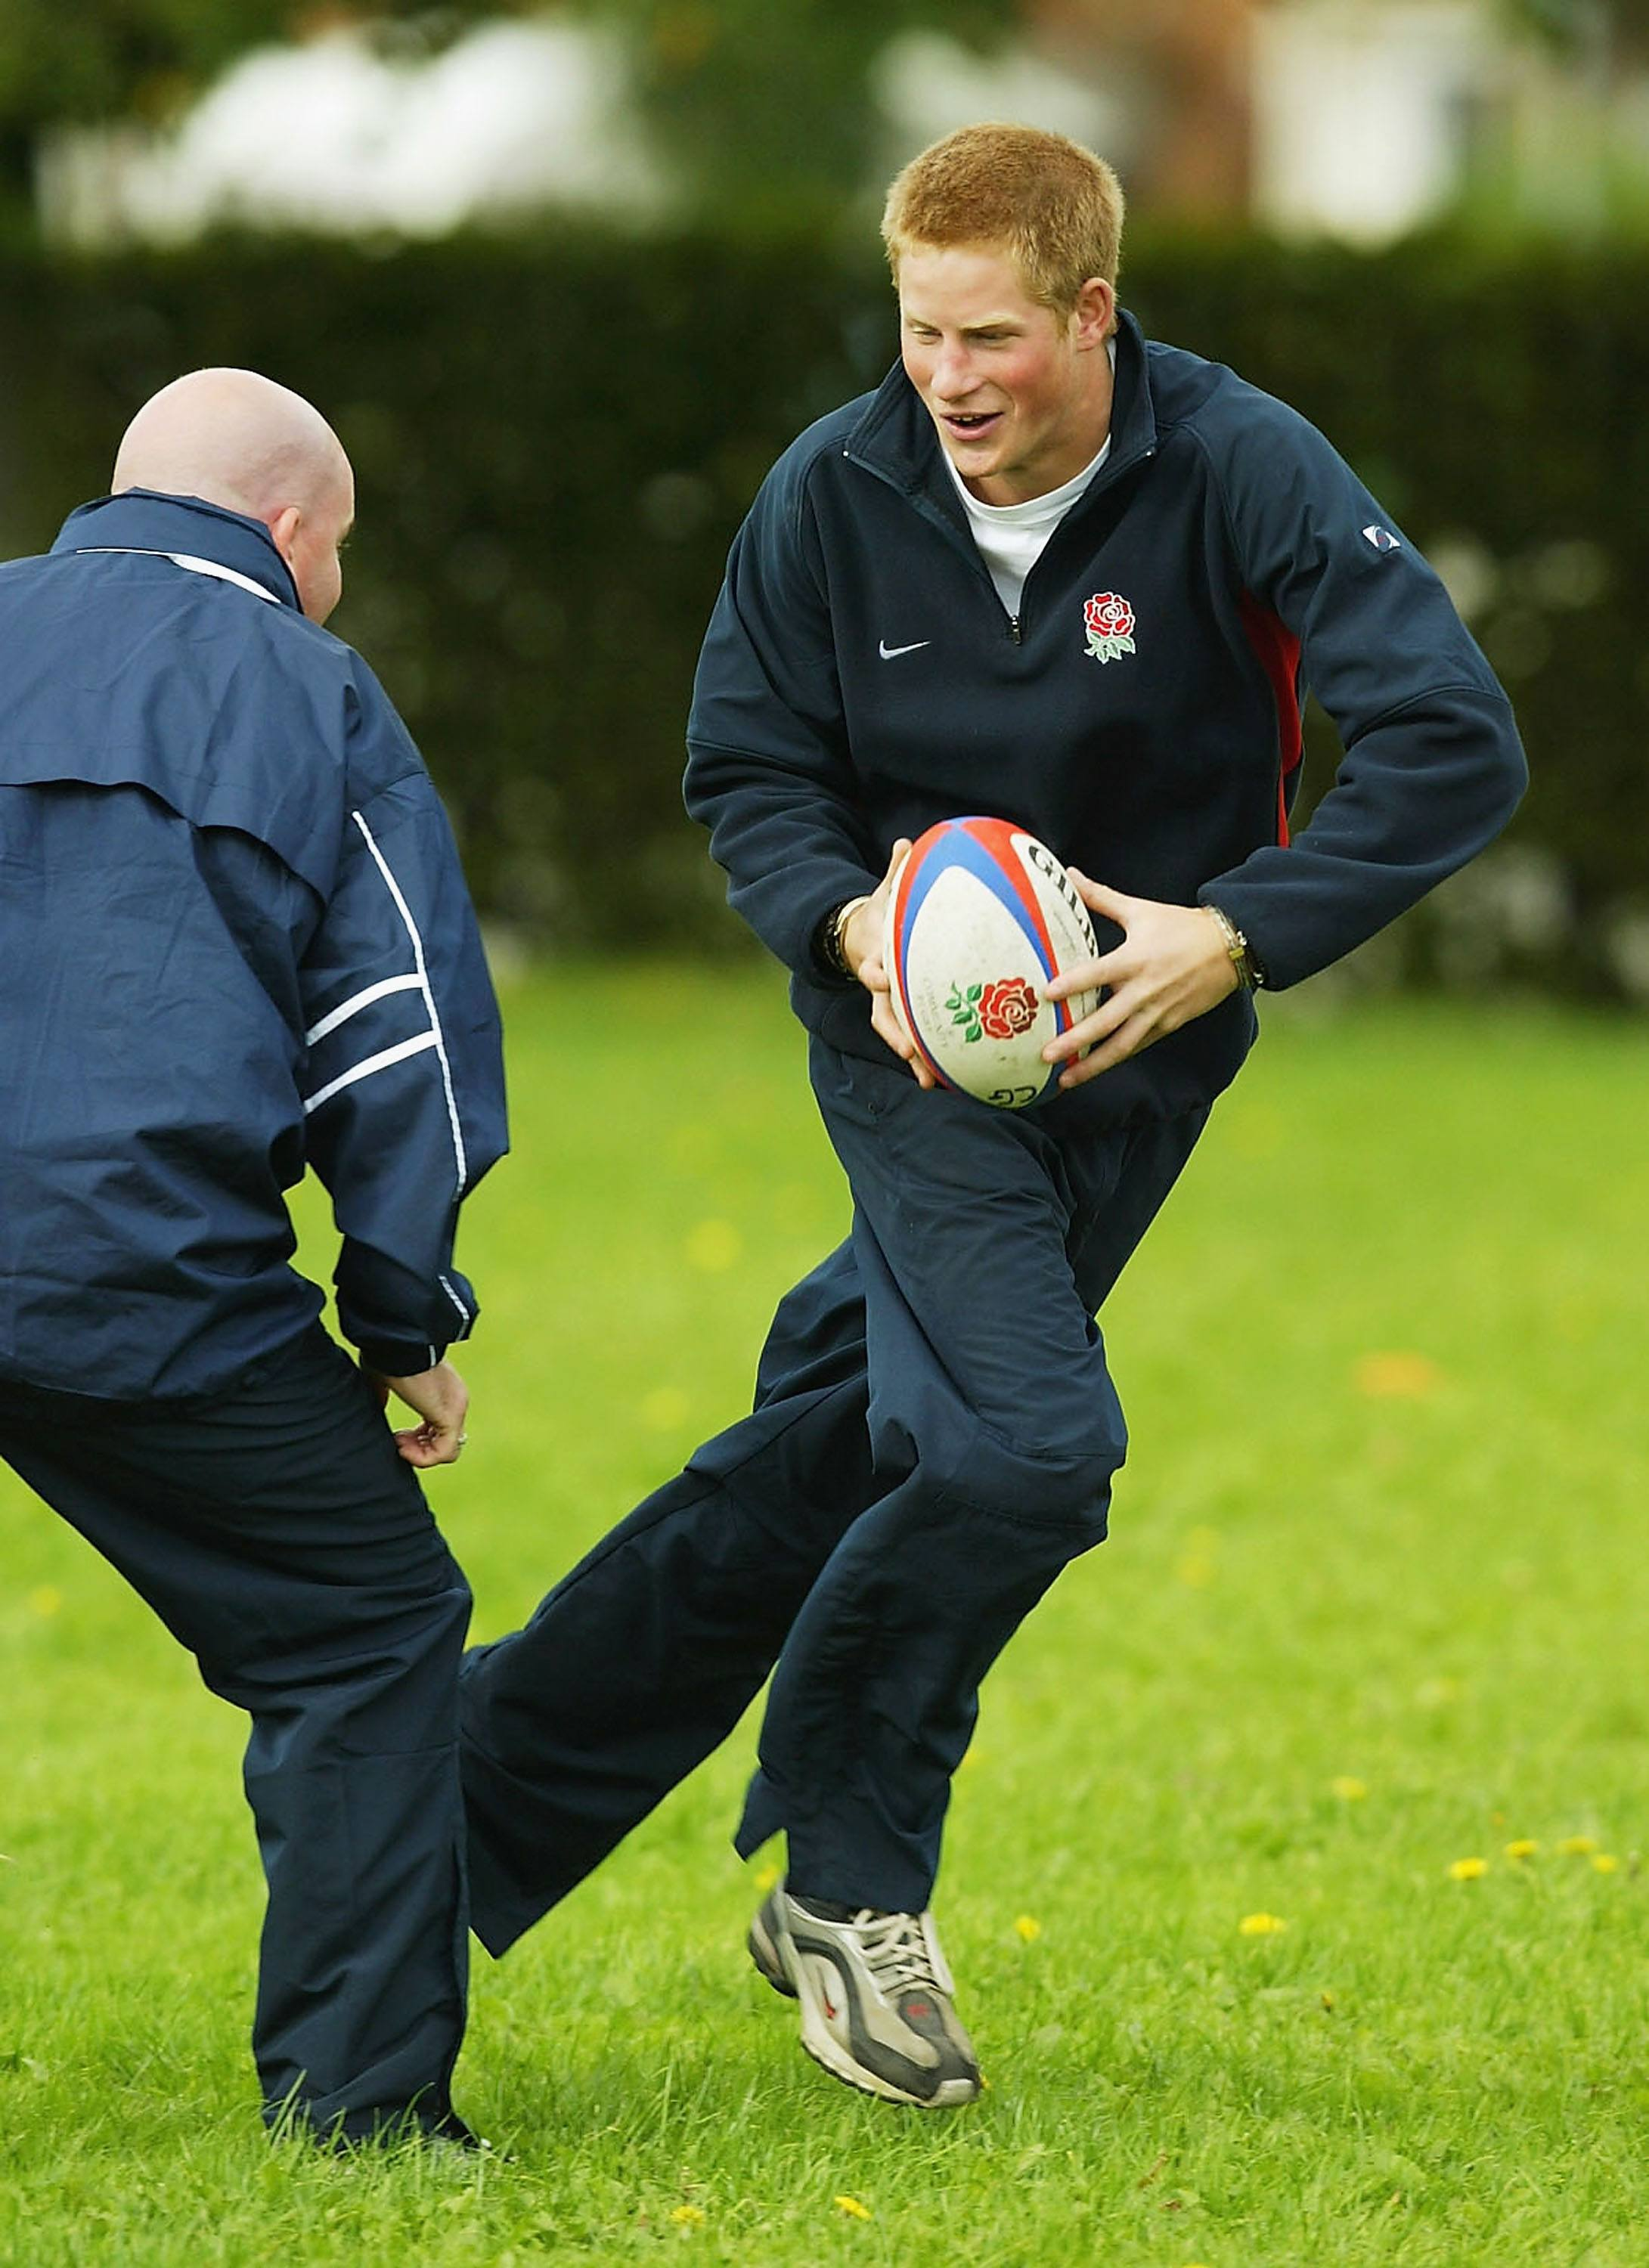 Prince Harry loves rugby